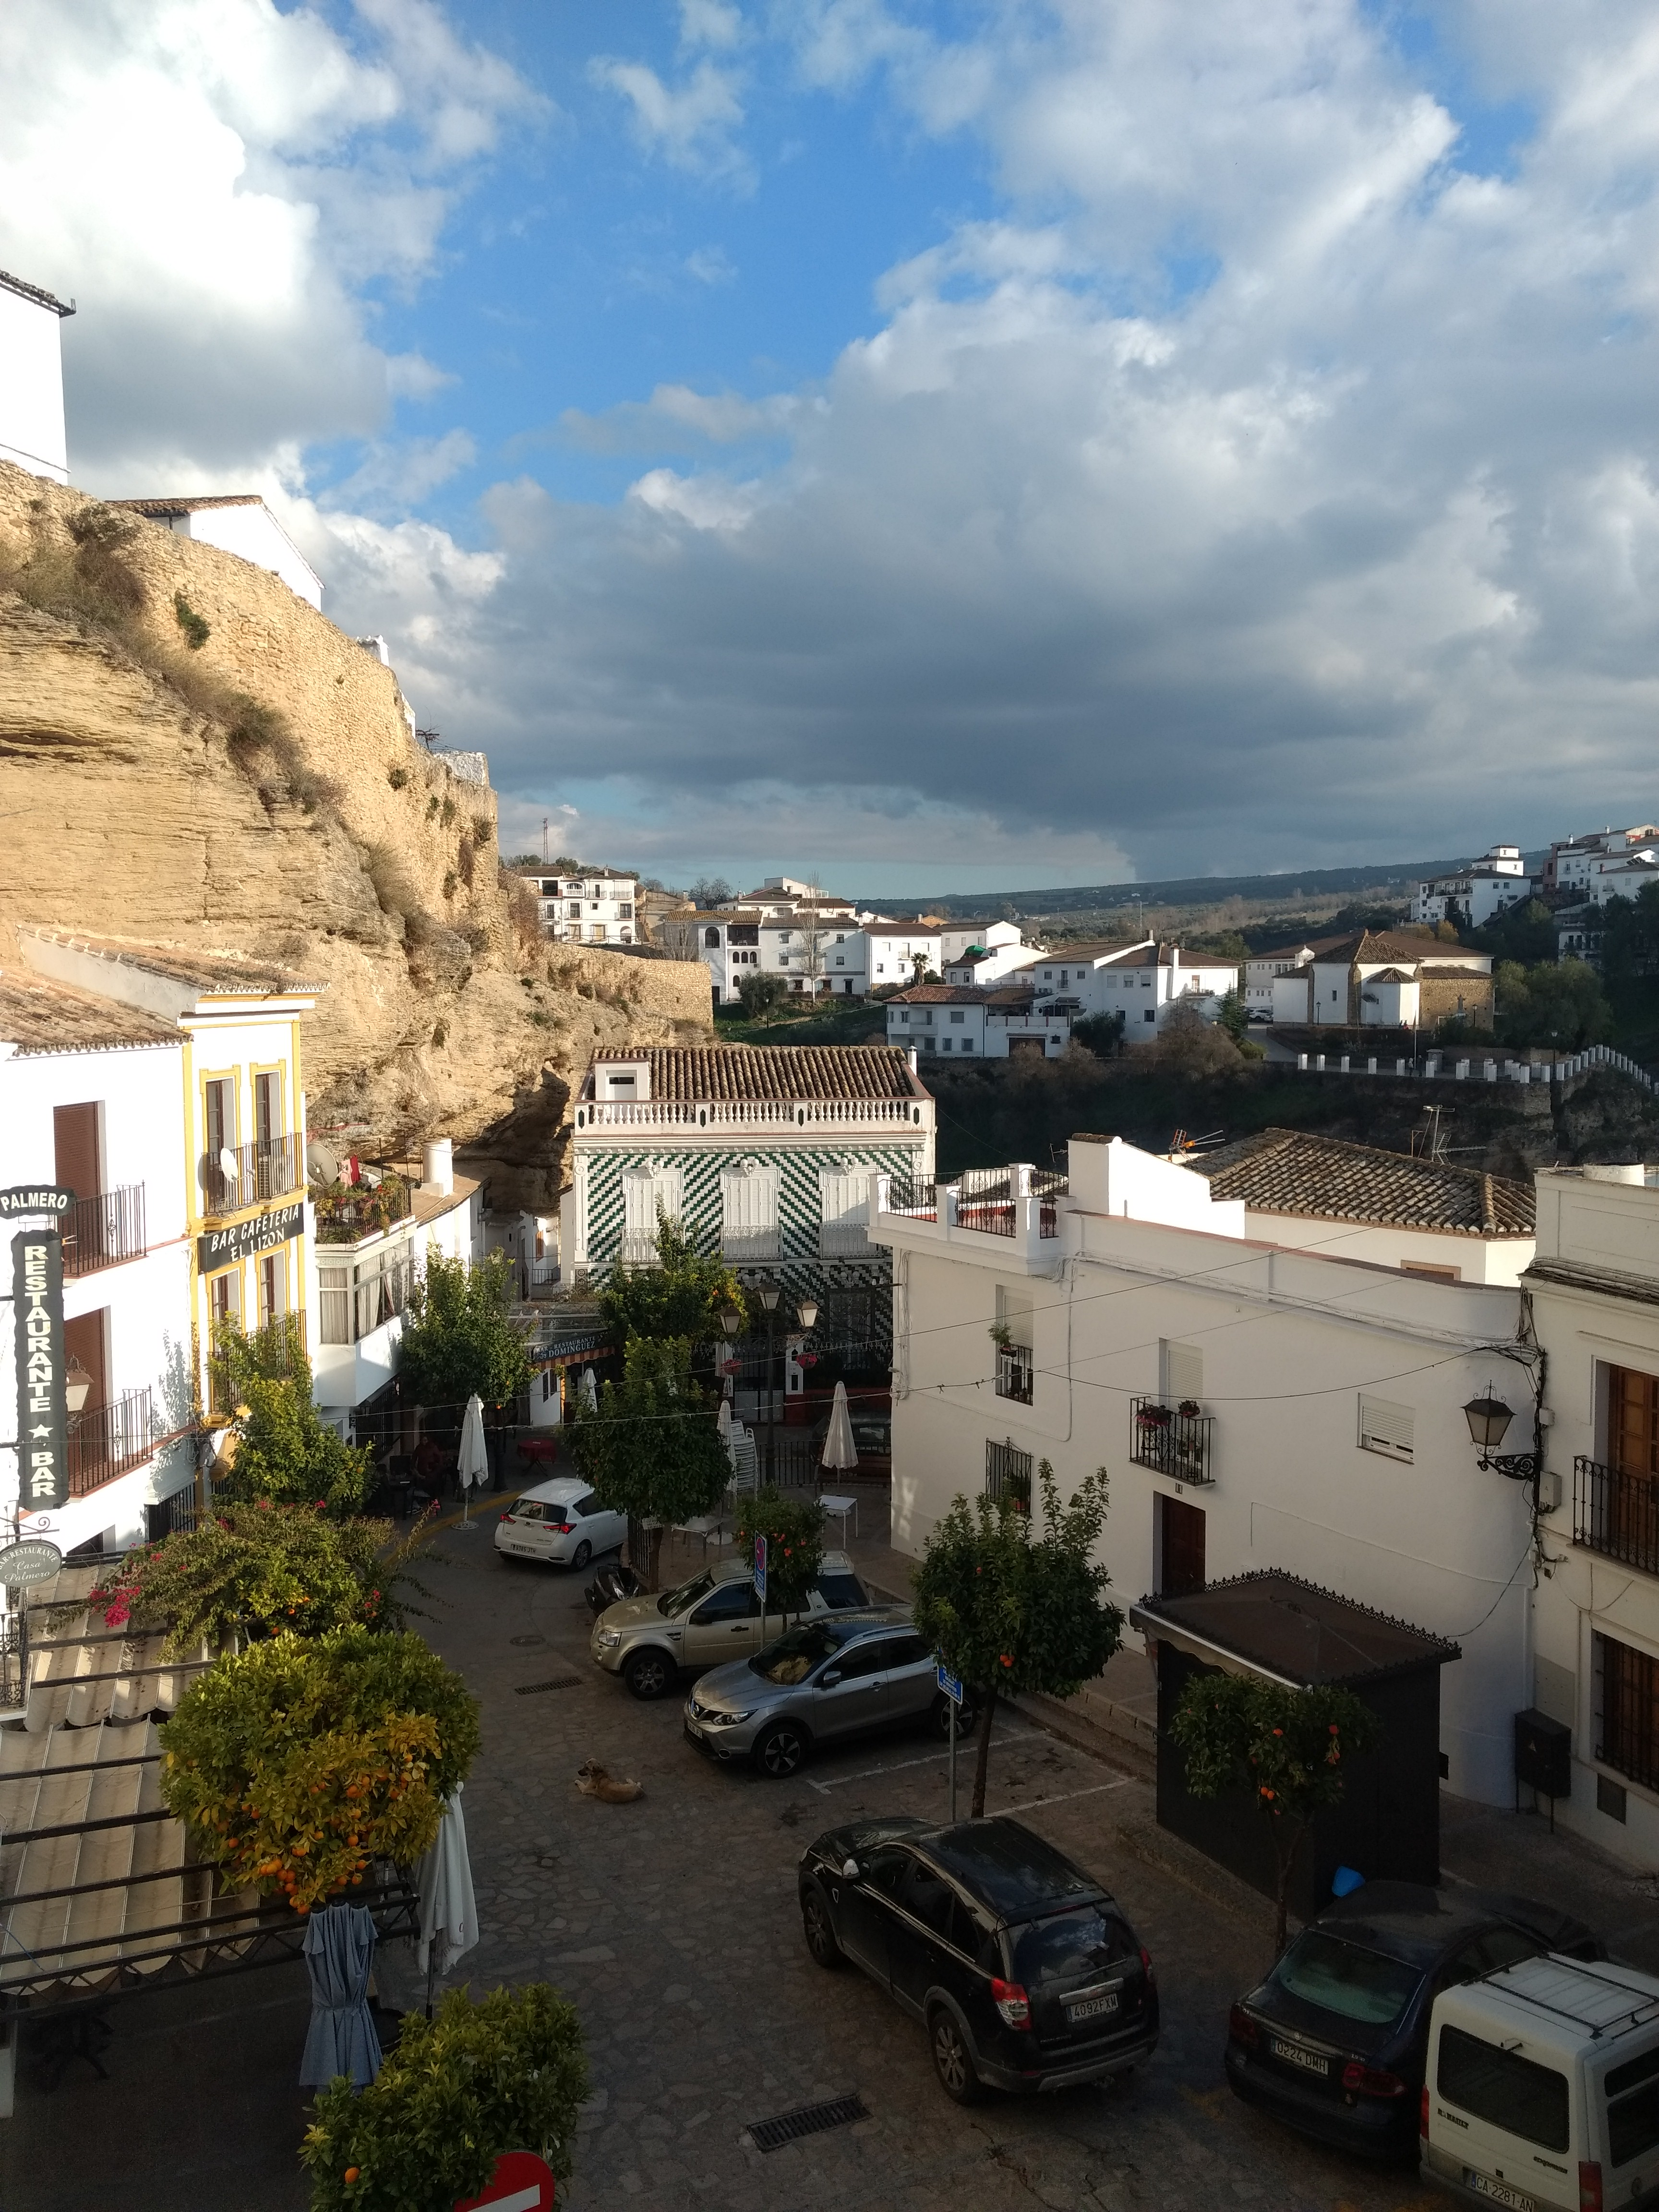 Plaza in Setenil from top of archway